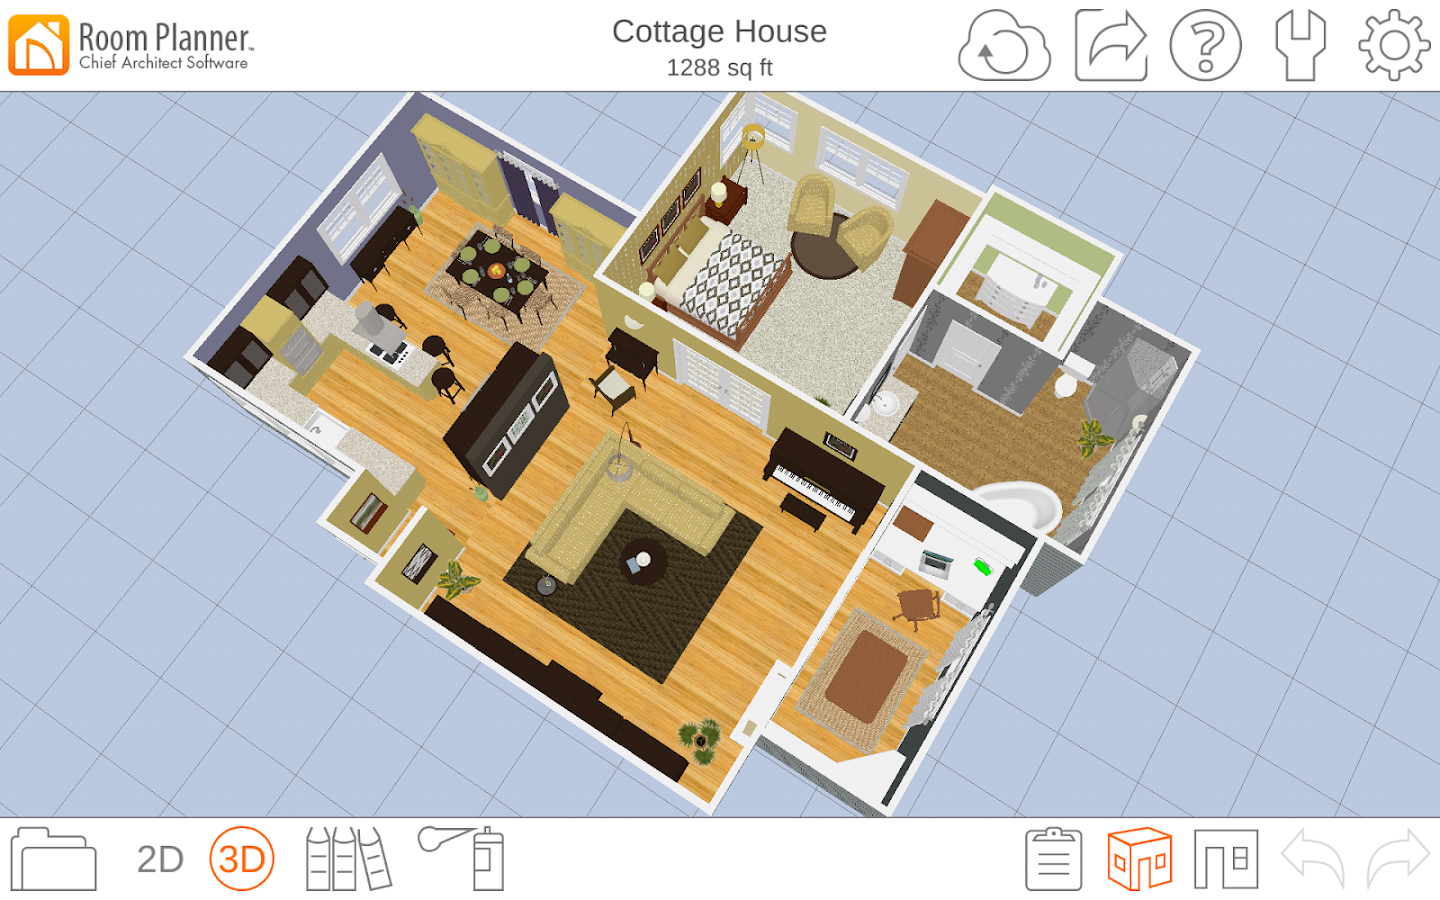 Room Planner Home Design Android Apps On Google Play: design your room app